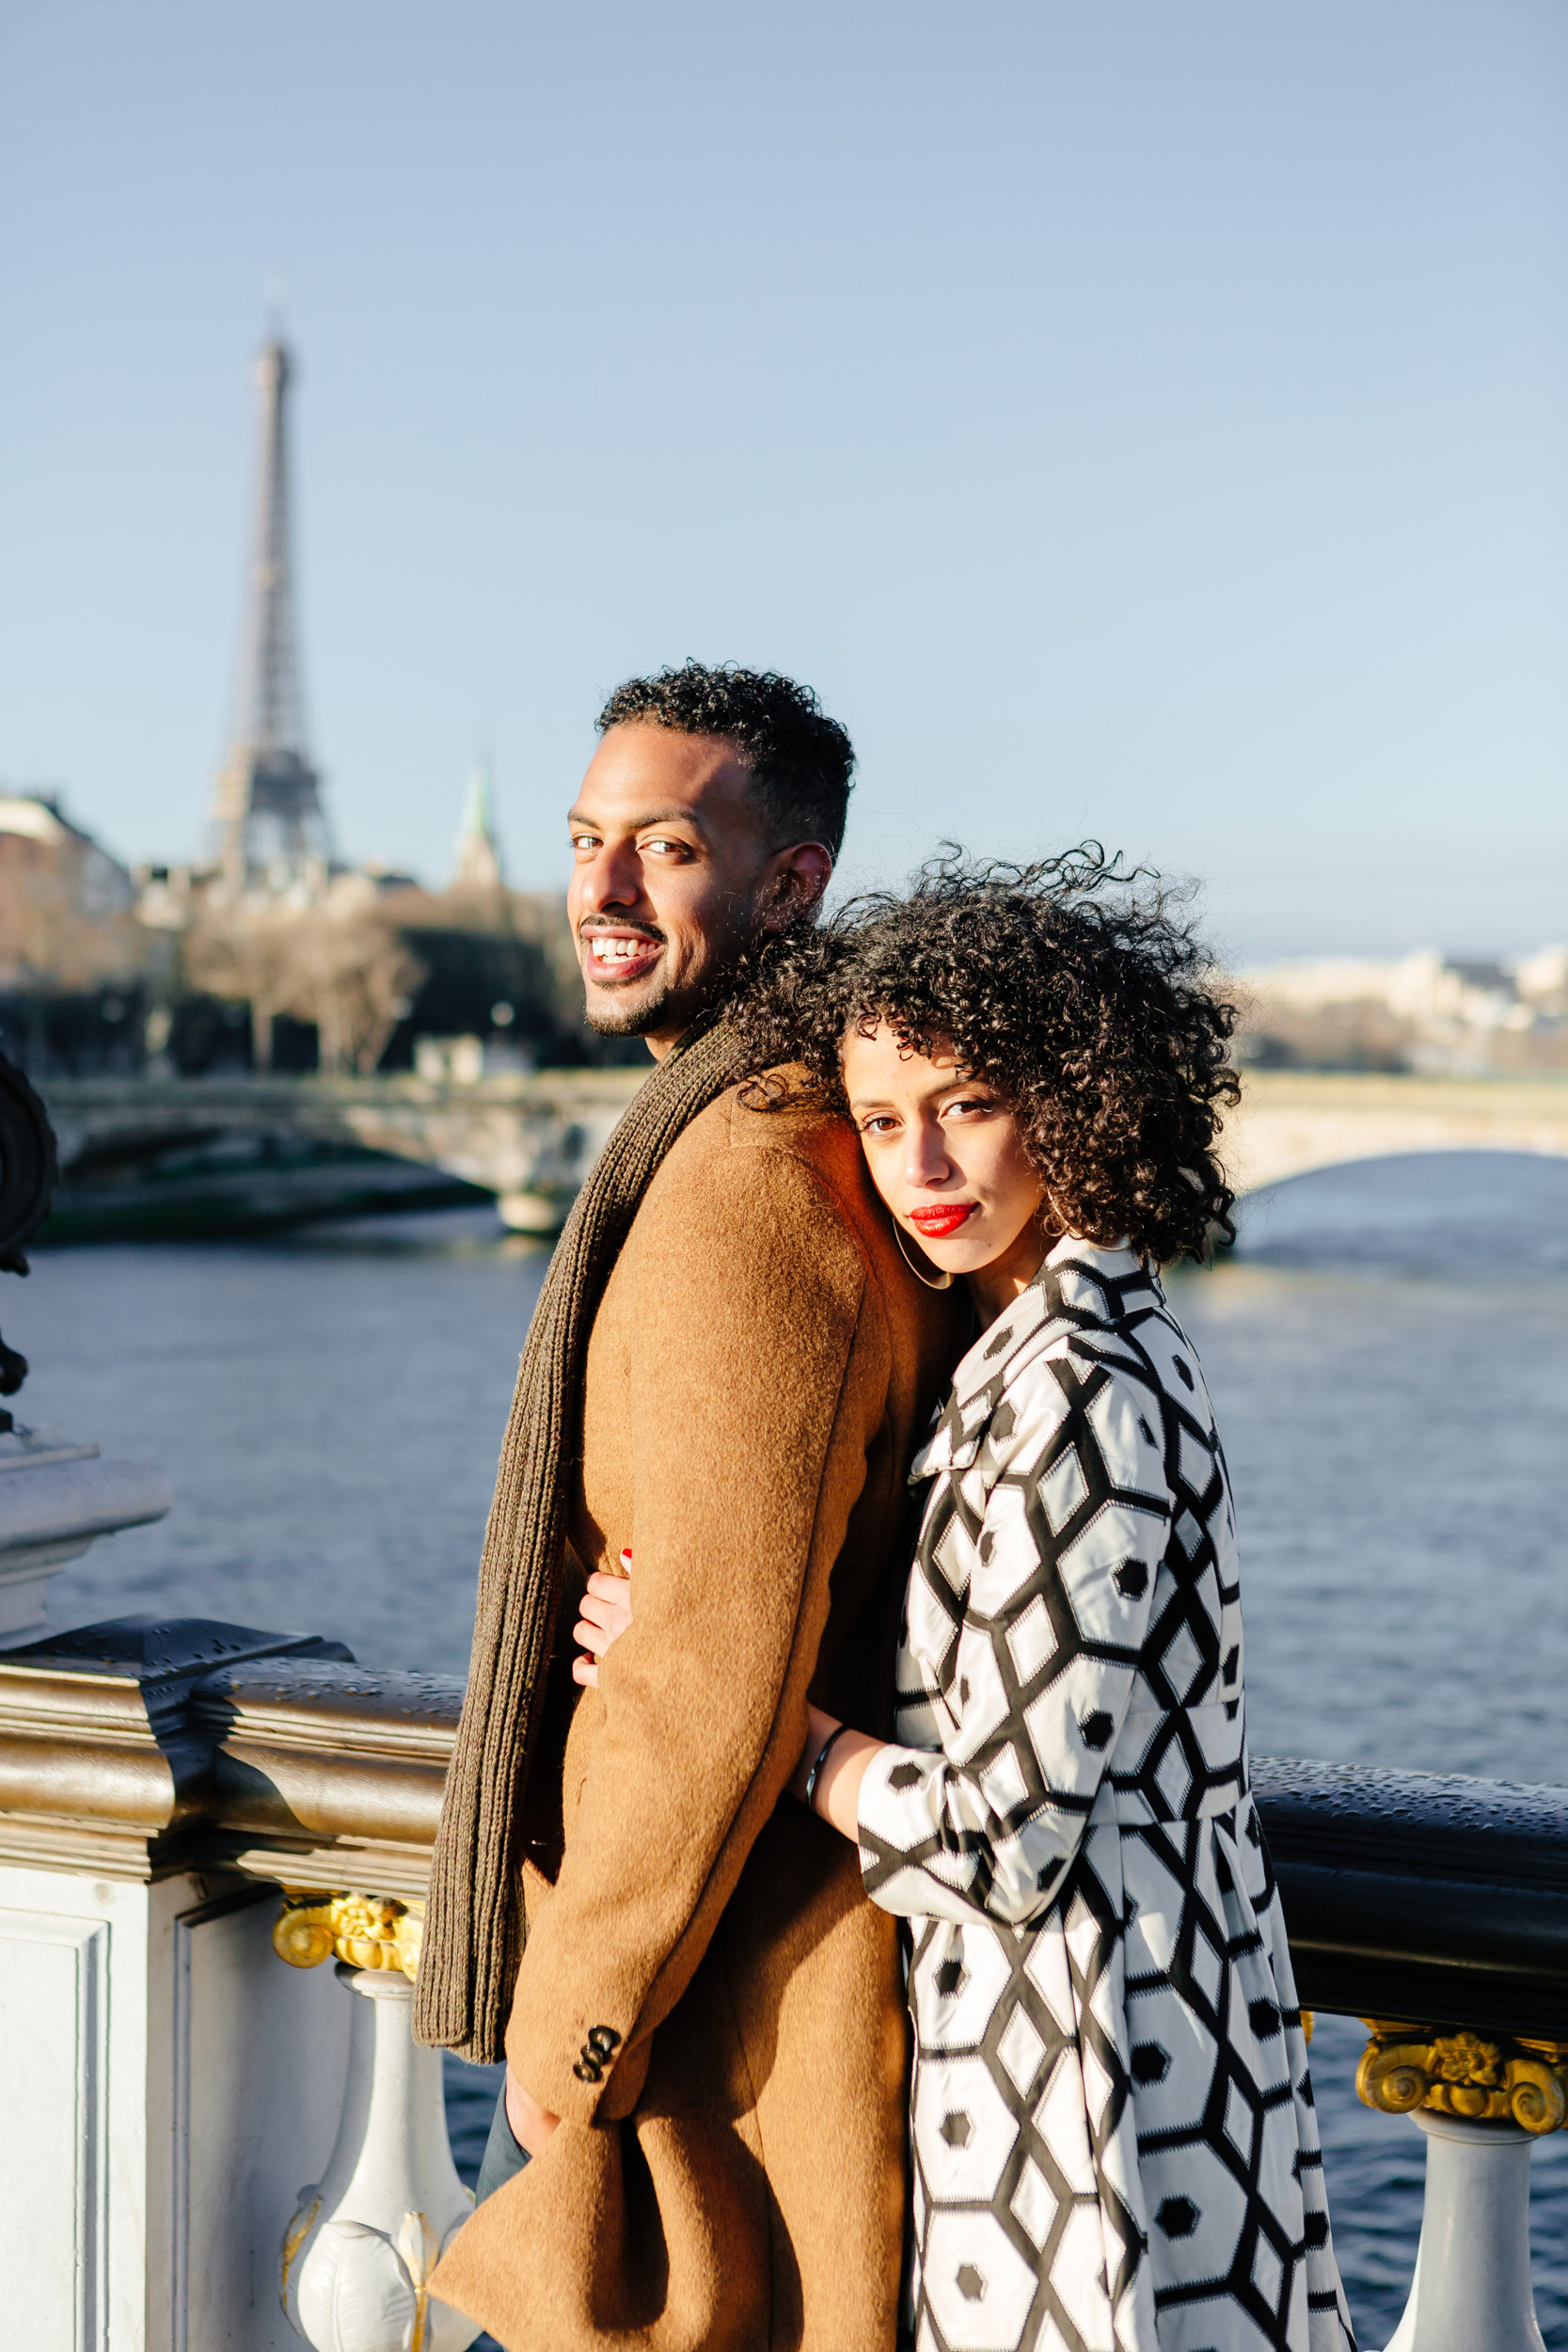 Couple session portrait at Pont Alexandre III captured by Paris Photographer Federico Guendel IheartParis www.iheartparis.fr